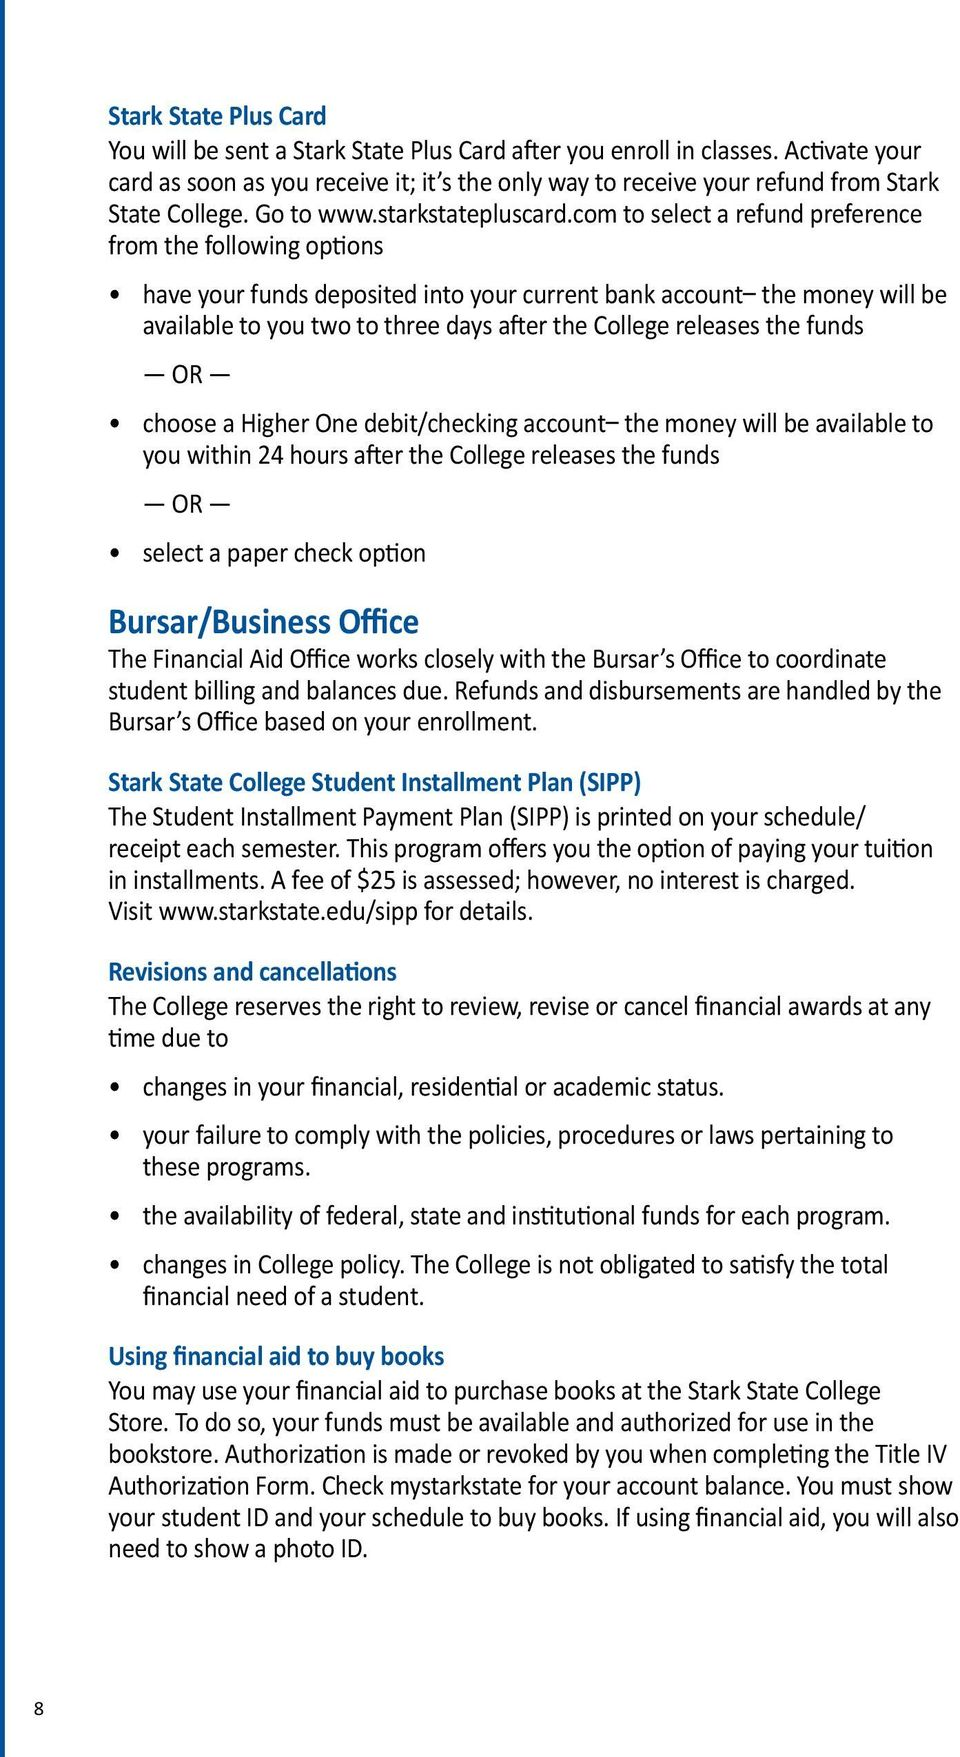 com to select a refund preference from the following options have your funds deposited into your current bank account the money will be available to you two to three days after the College releases